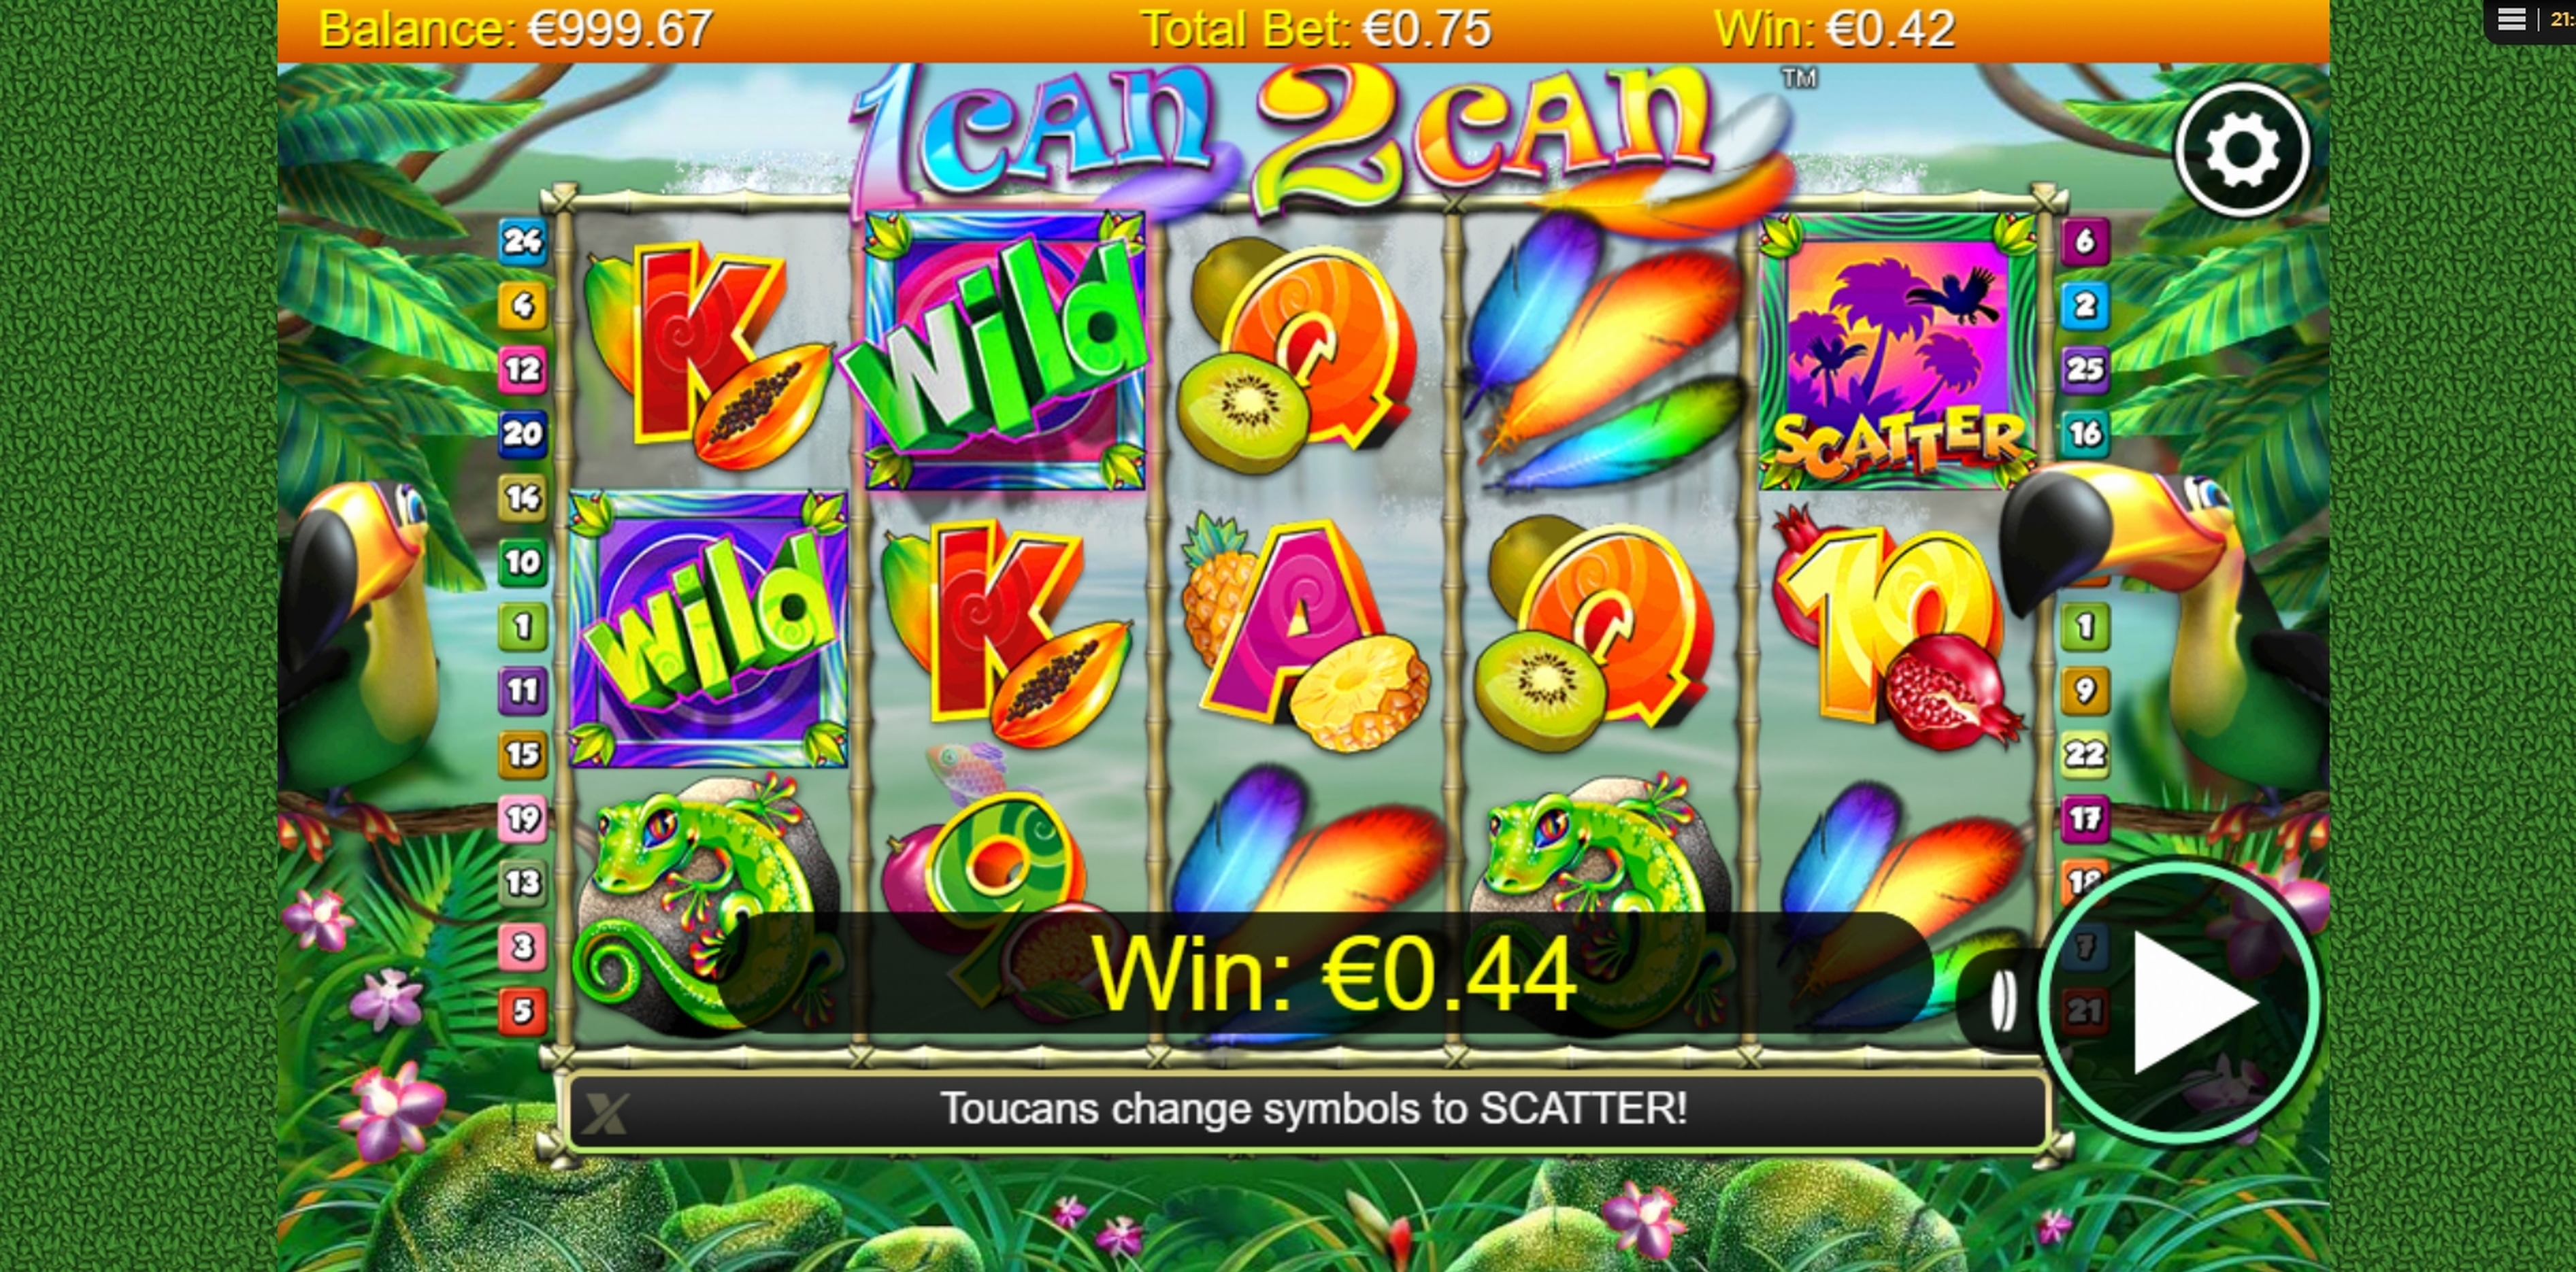 1 can 2 can nextgen gaming slot game games reviews latest]